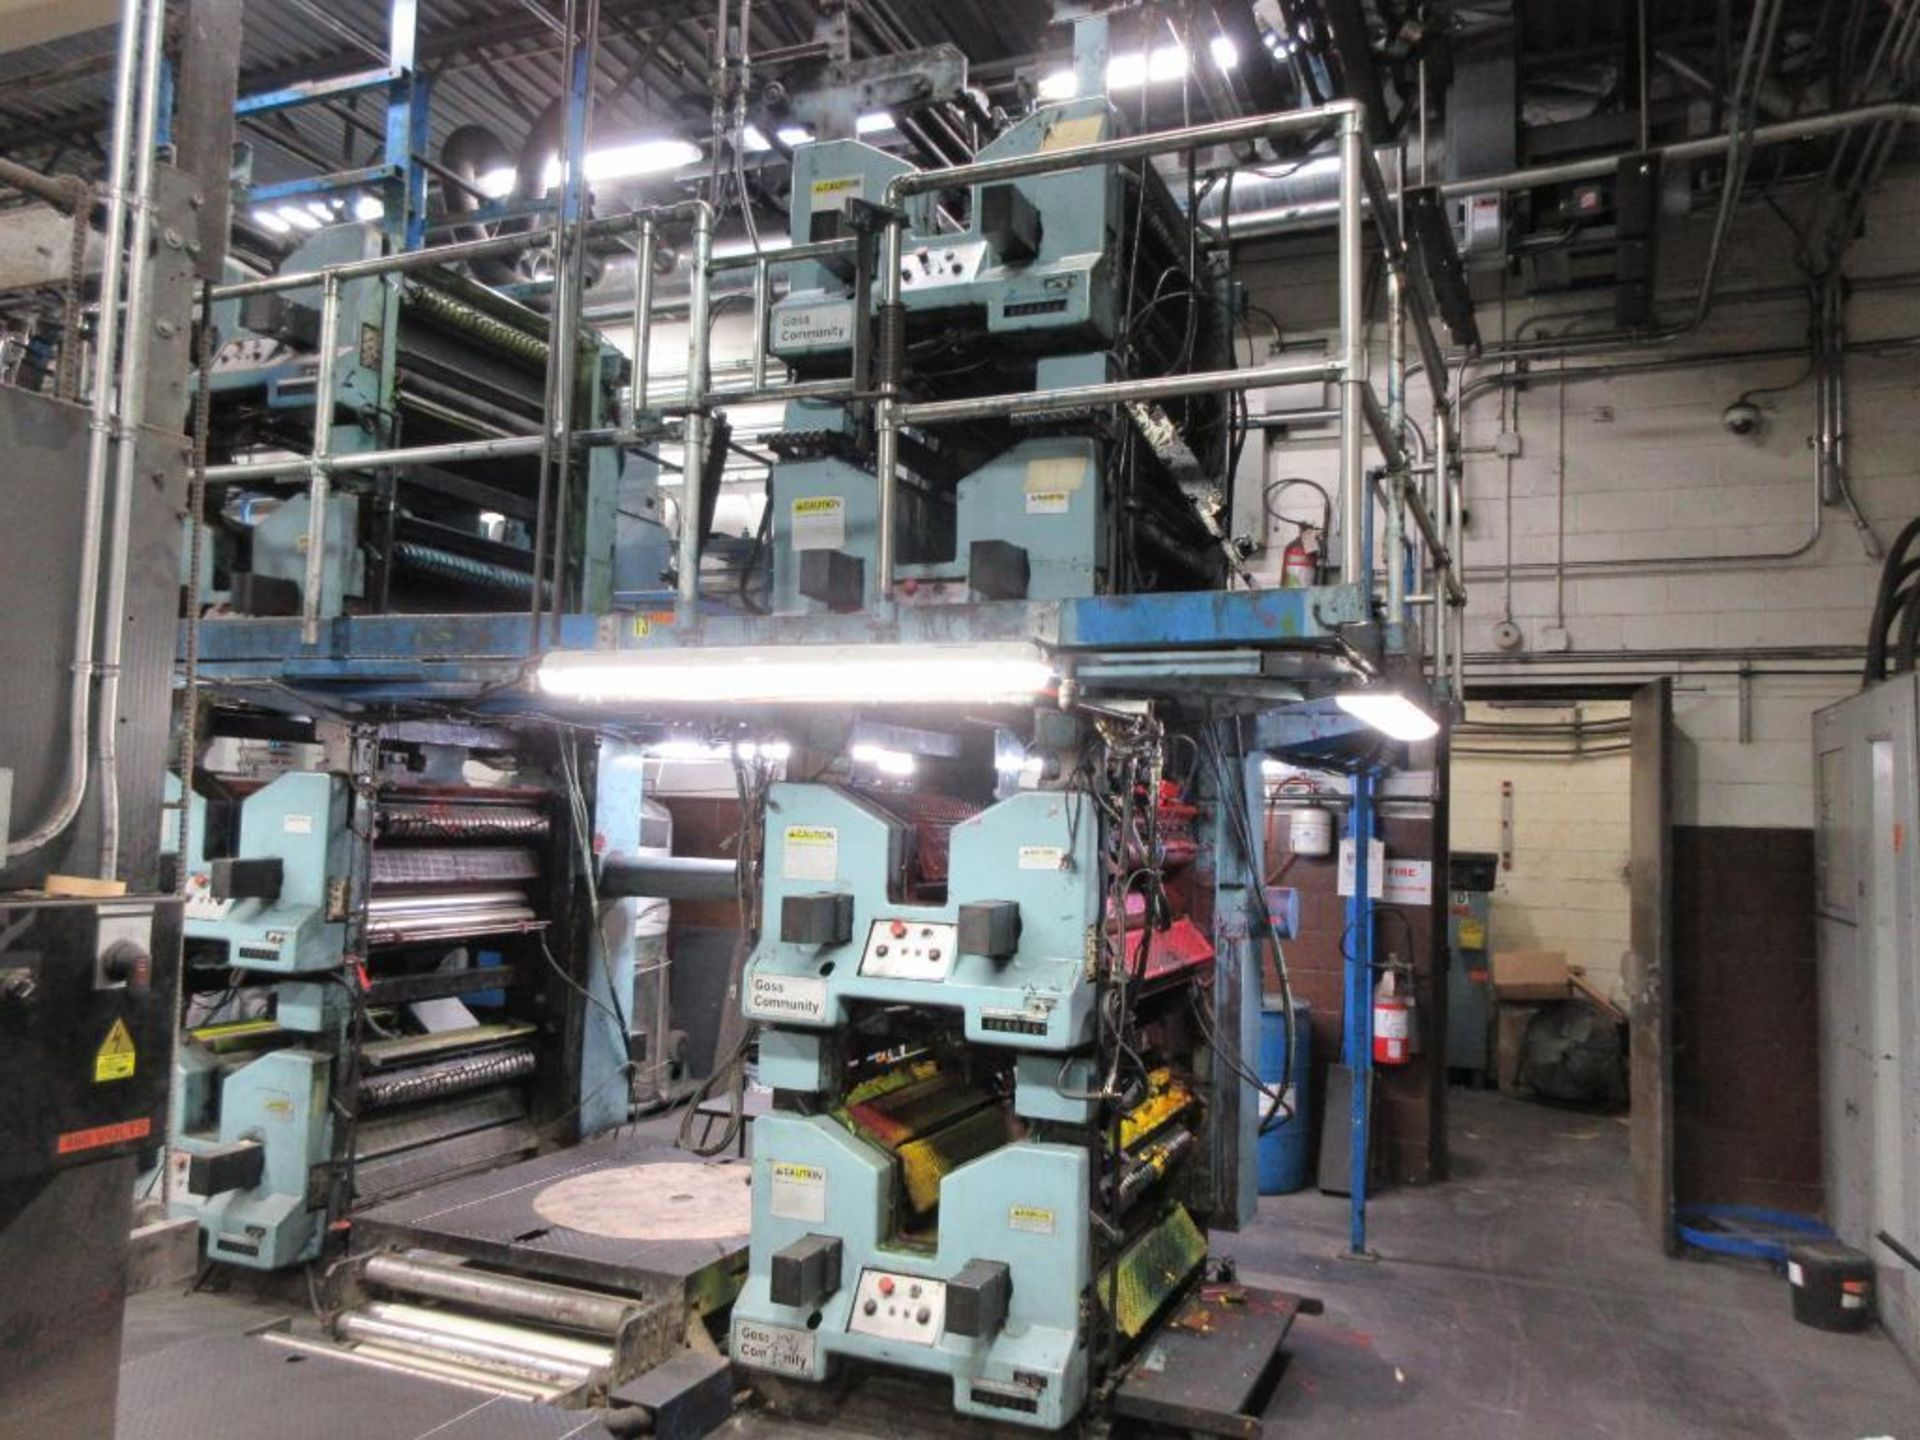 "Complete Goss/Ventura 22.75"" cut off 50 unit web offset press featuring: Ventura 30 4 high (0), Vent - Image 25 of 58"